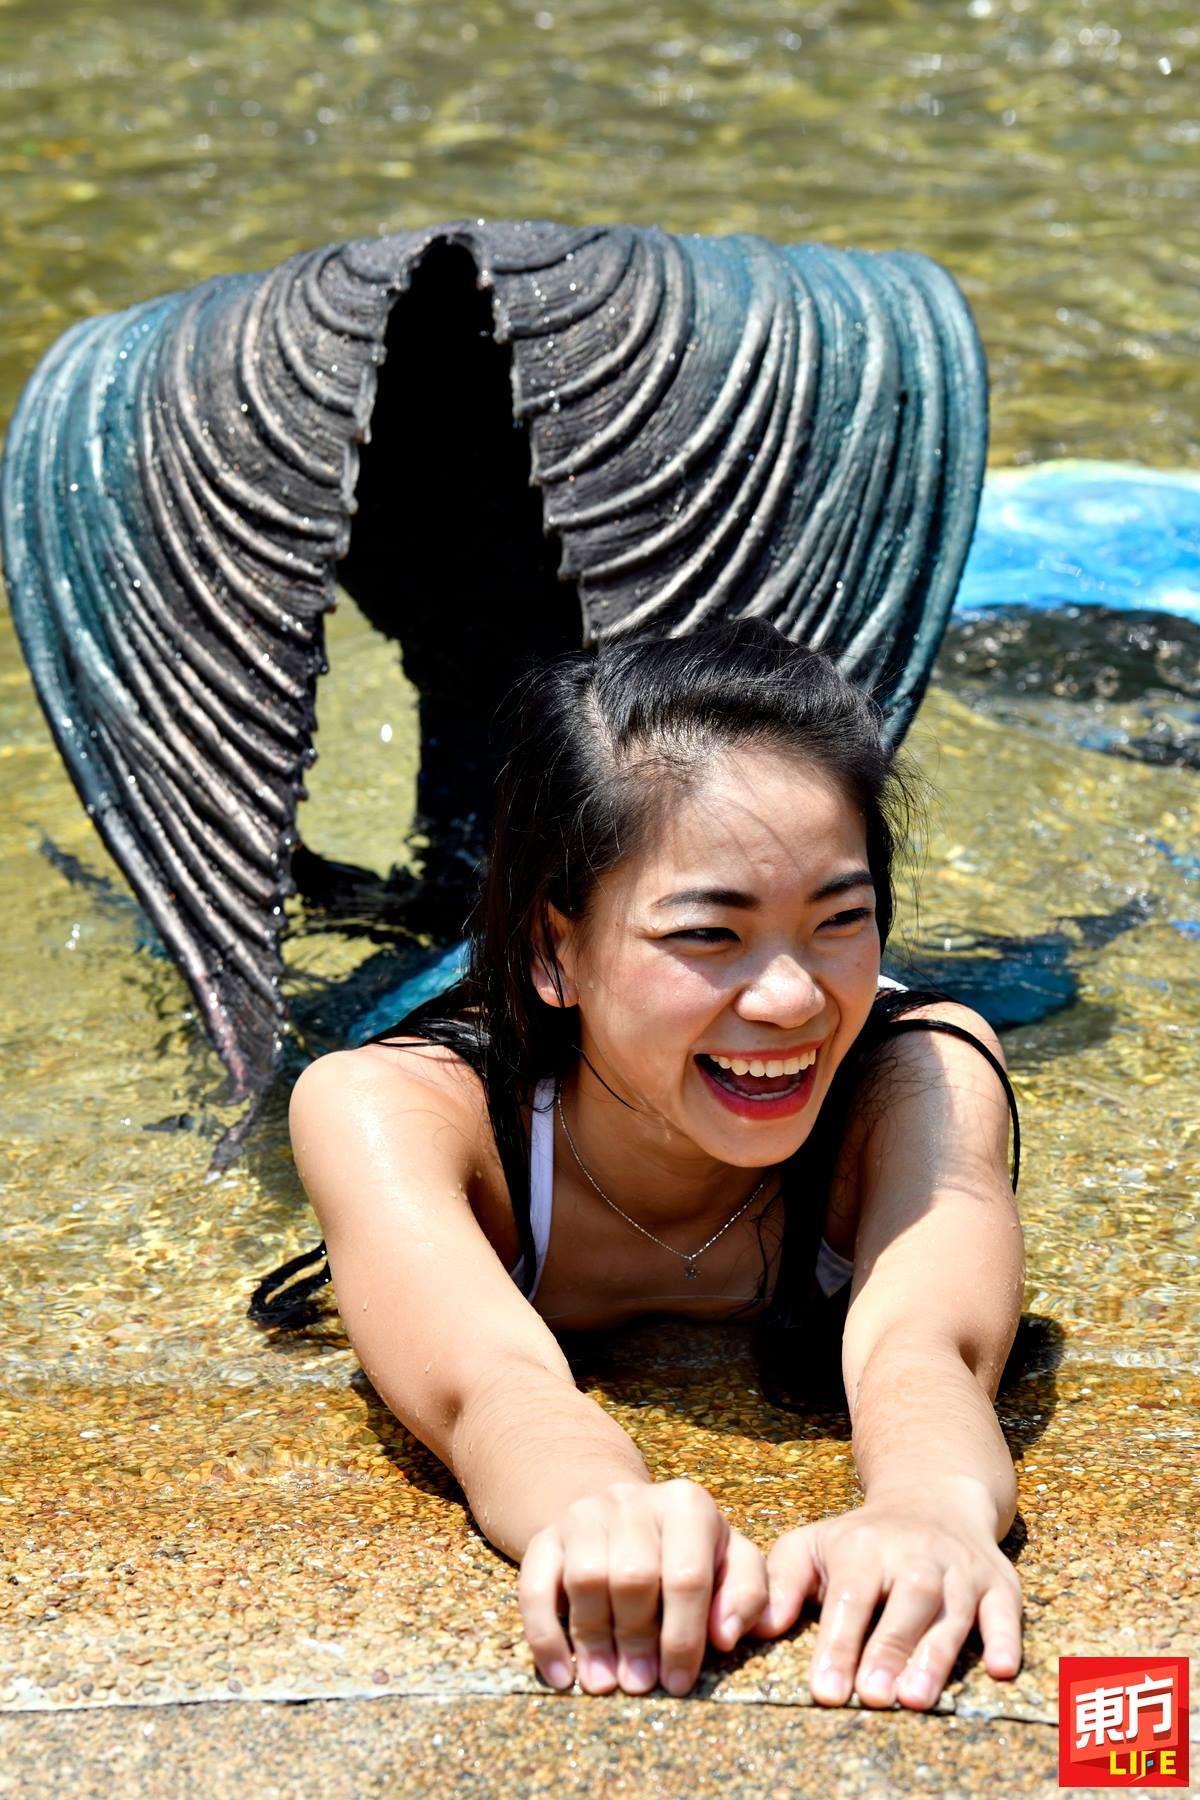 Ser Ling has always wanted to become a mermaid.